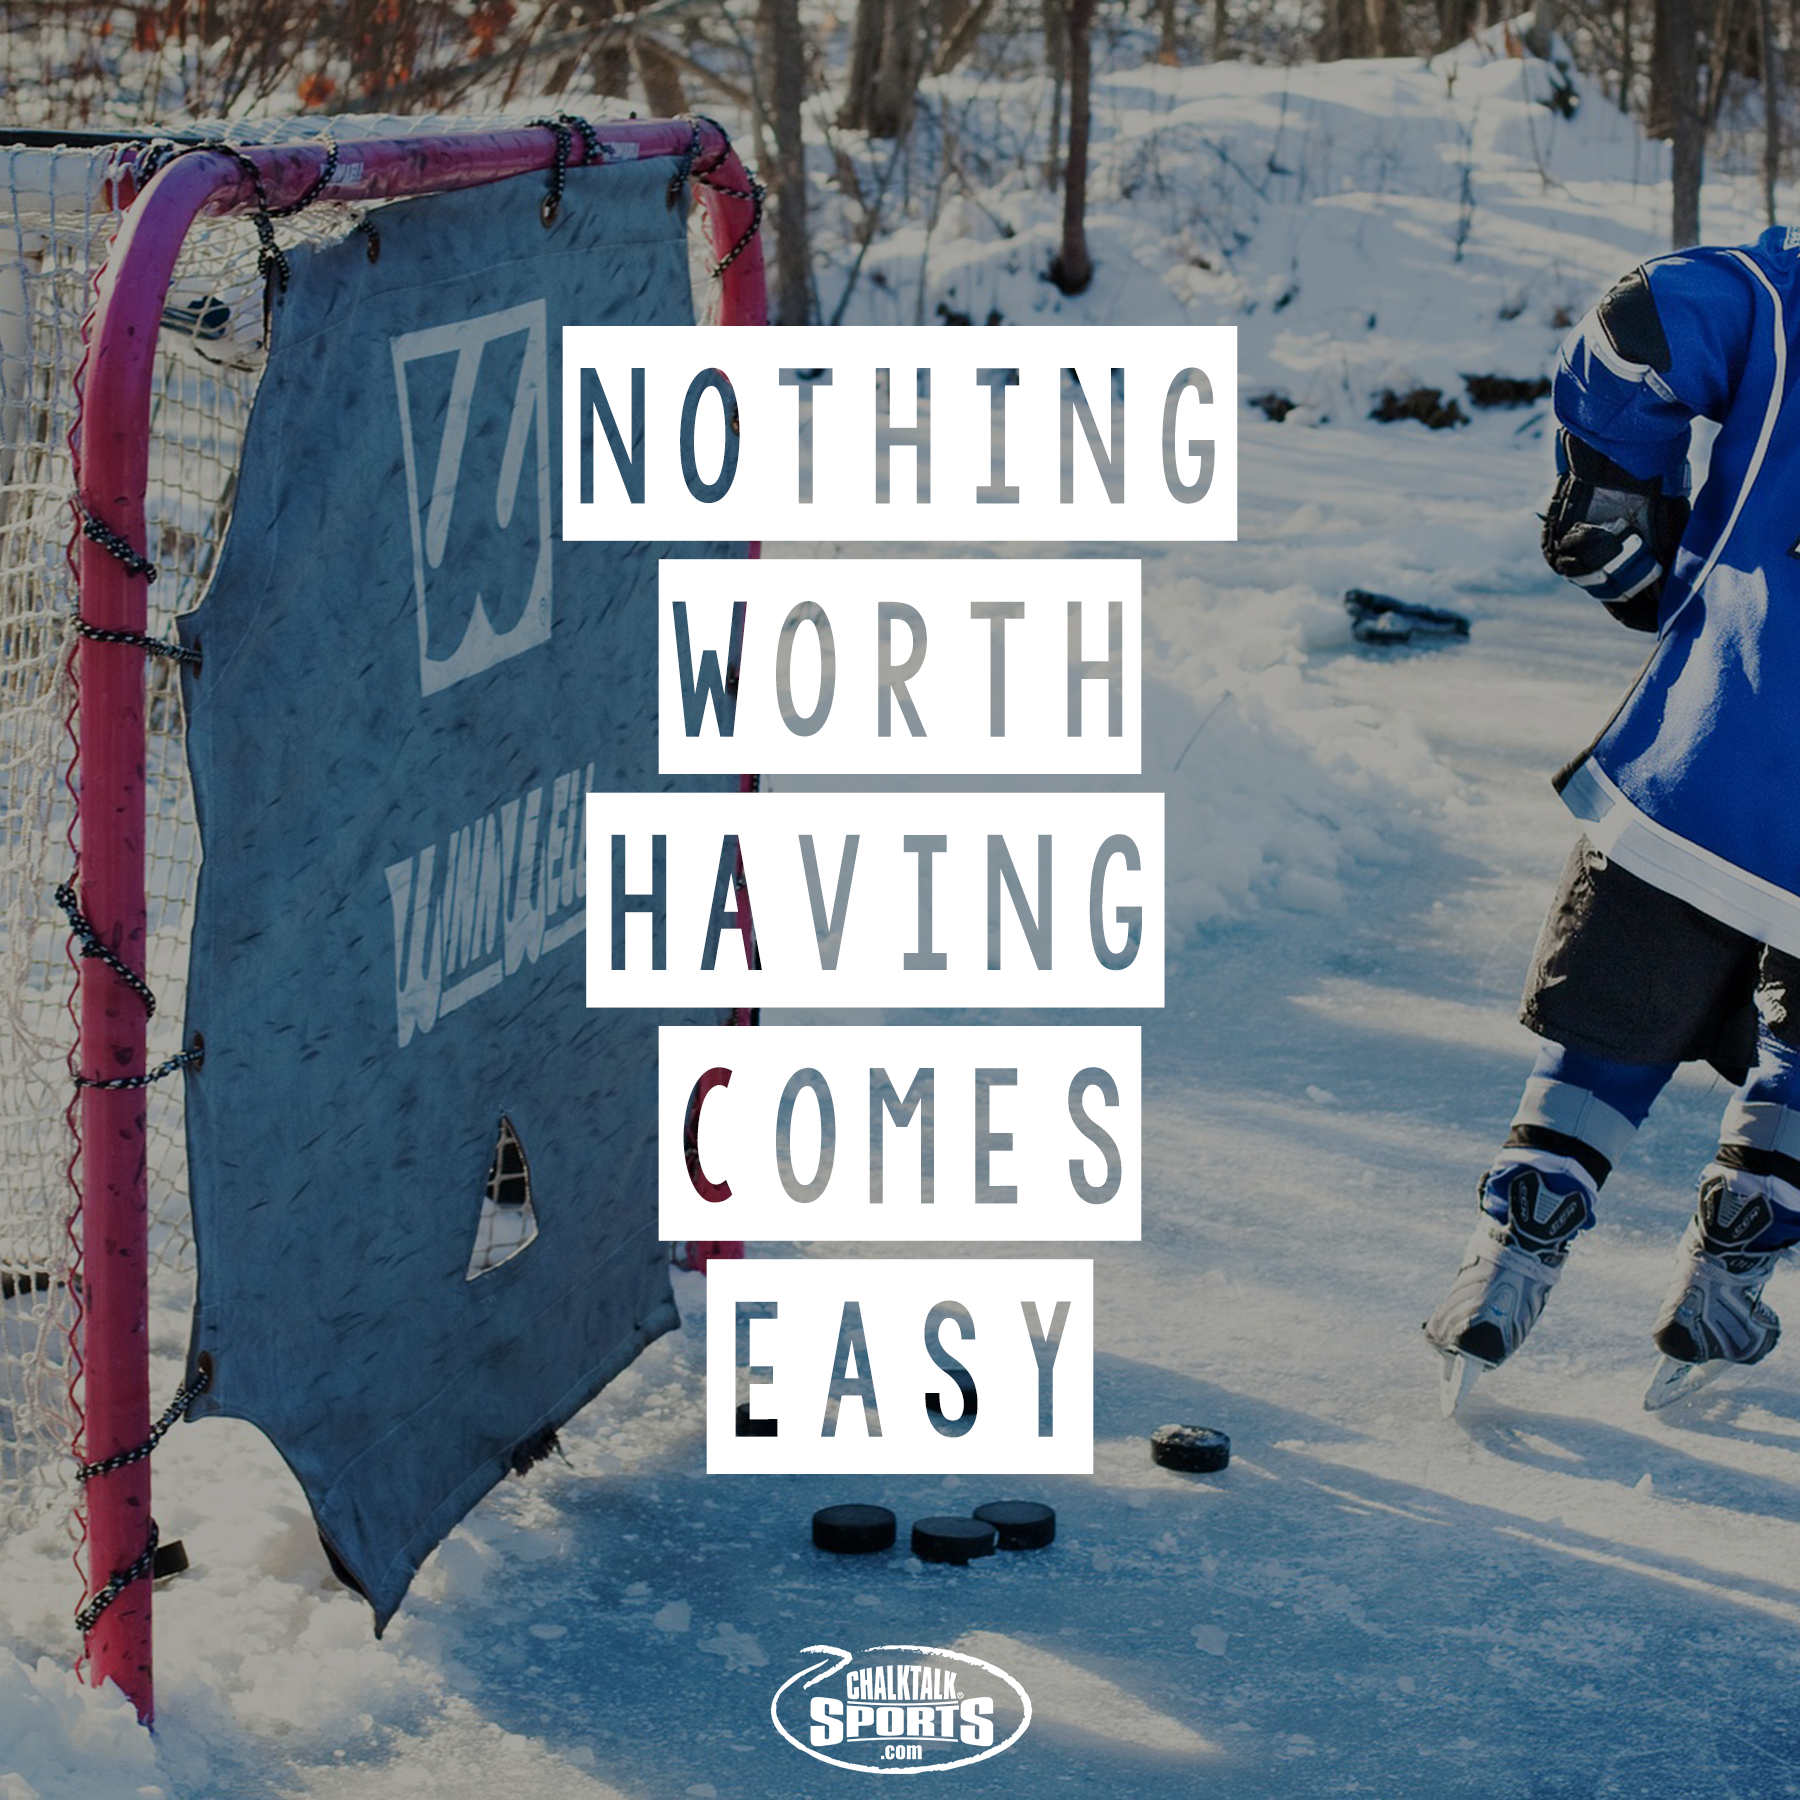 Nothing worth having comes easy.  Always push yourself to reach your goals then push yourself even harder to reach new goals.  Inspiration from ChalkTalkSPORTS.com!